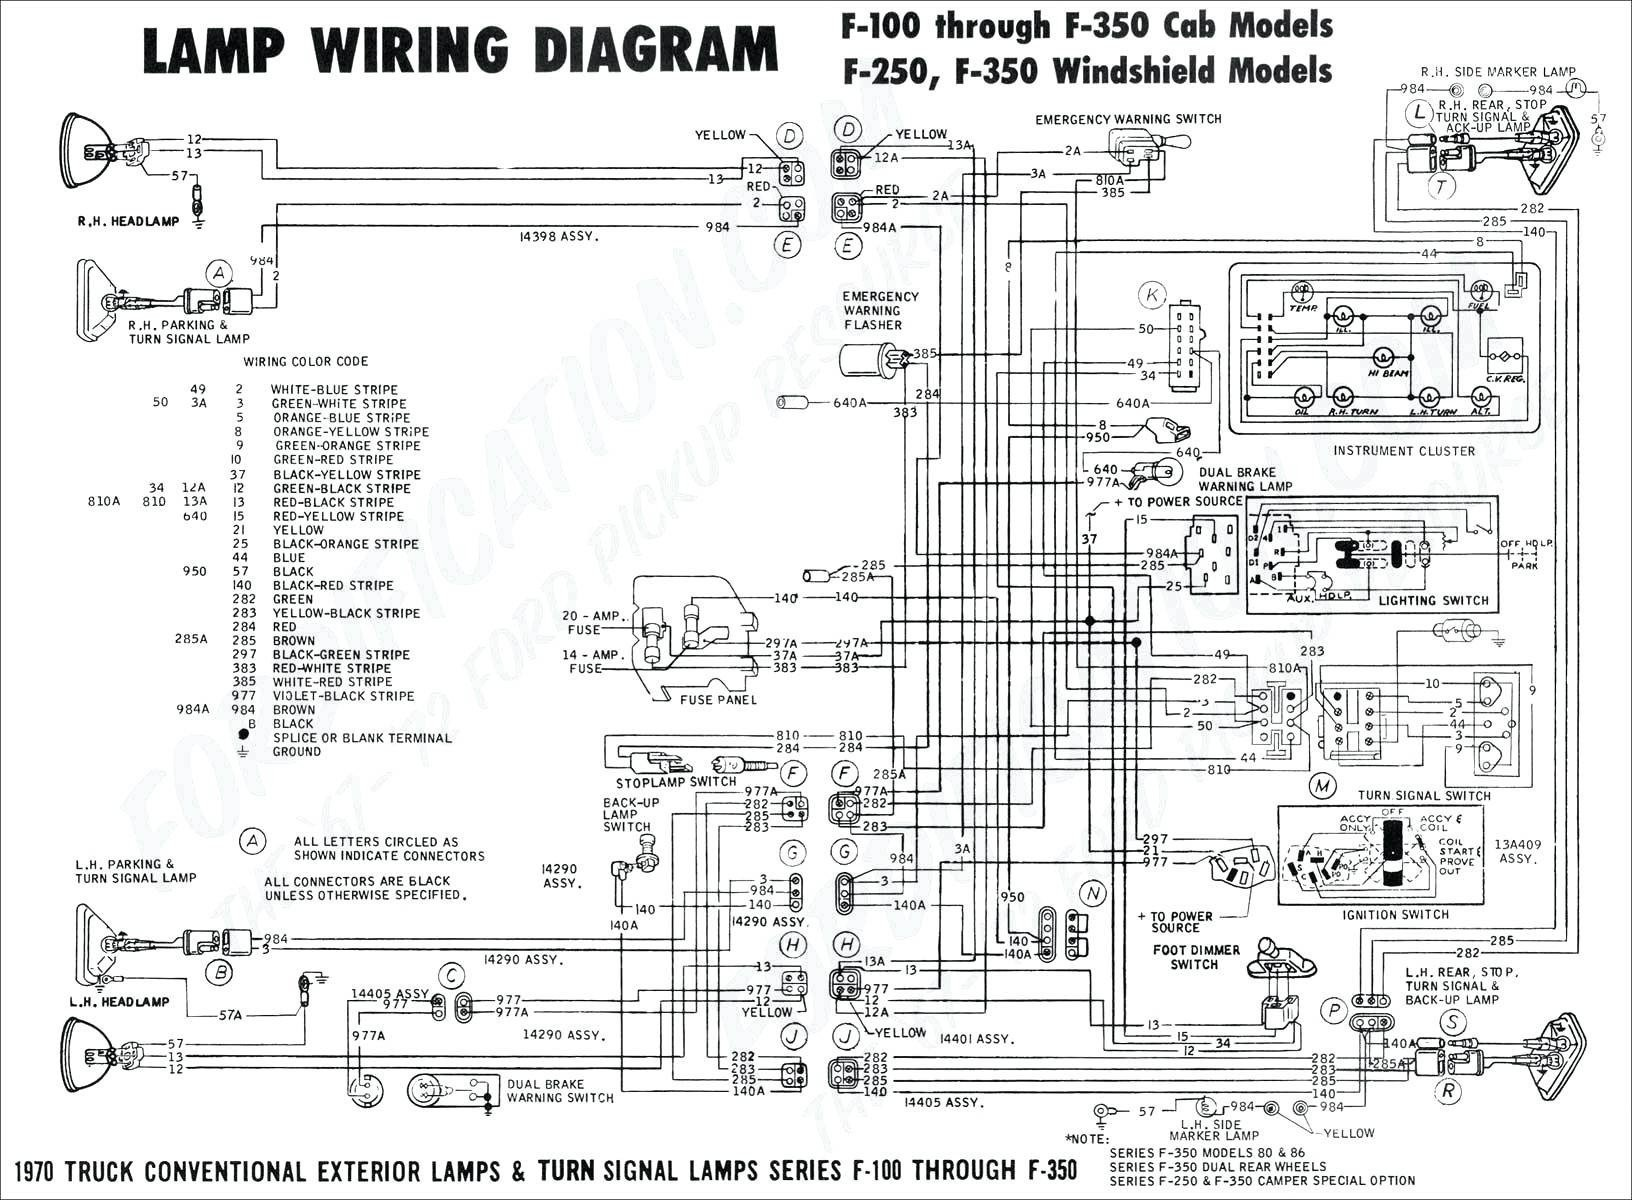 2017 f150 wiring diagram